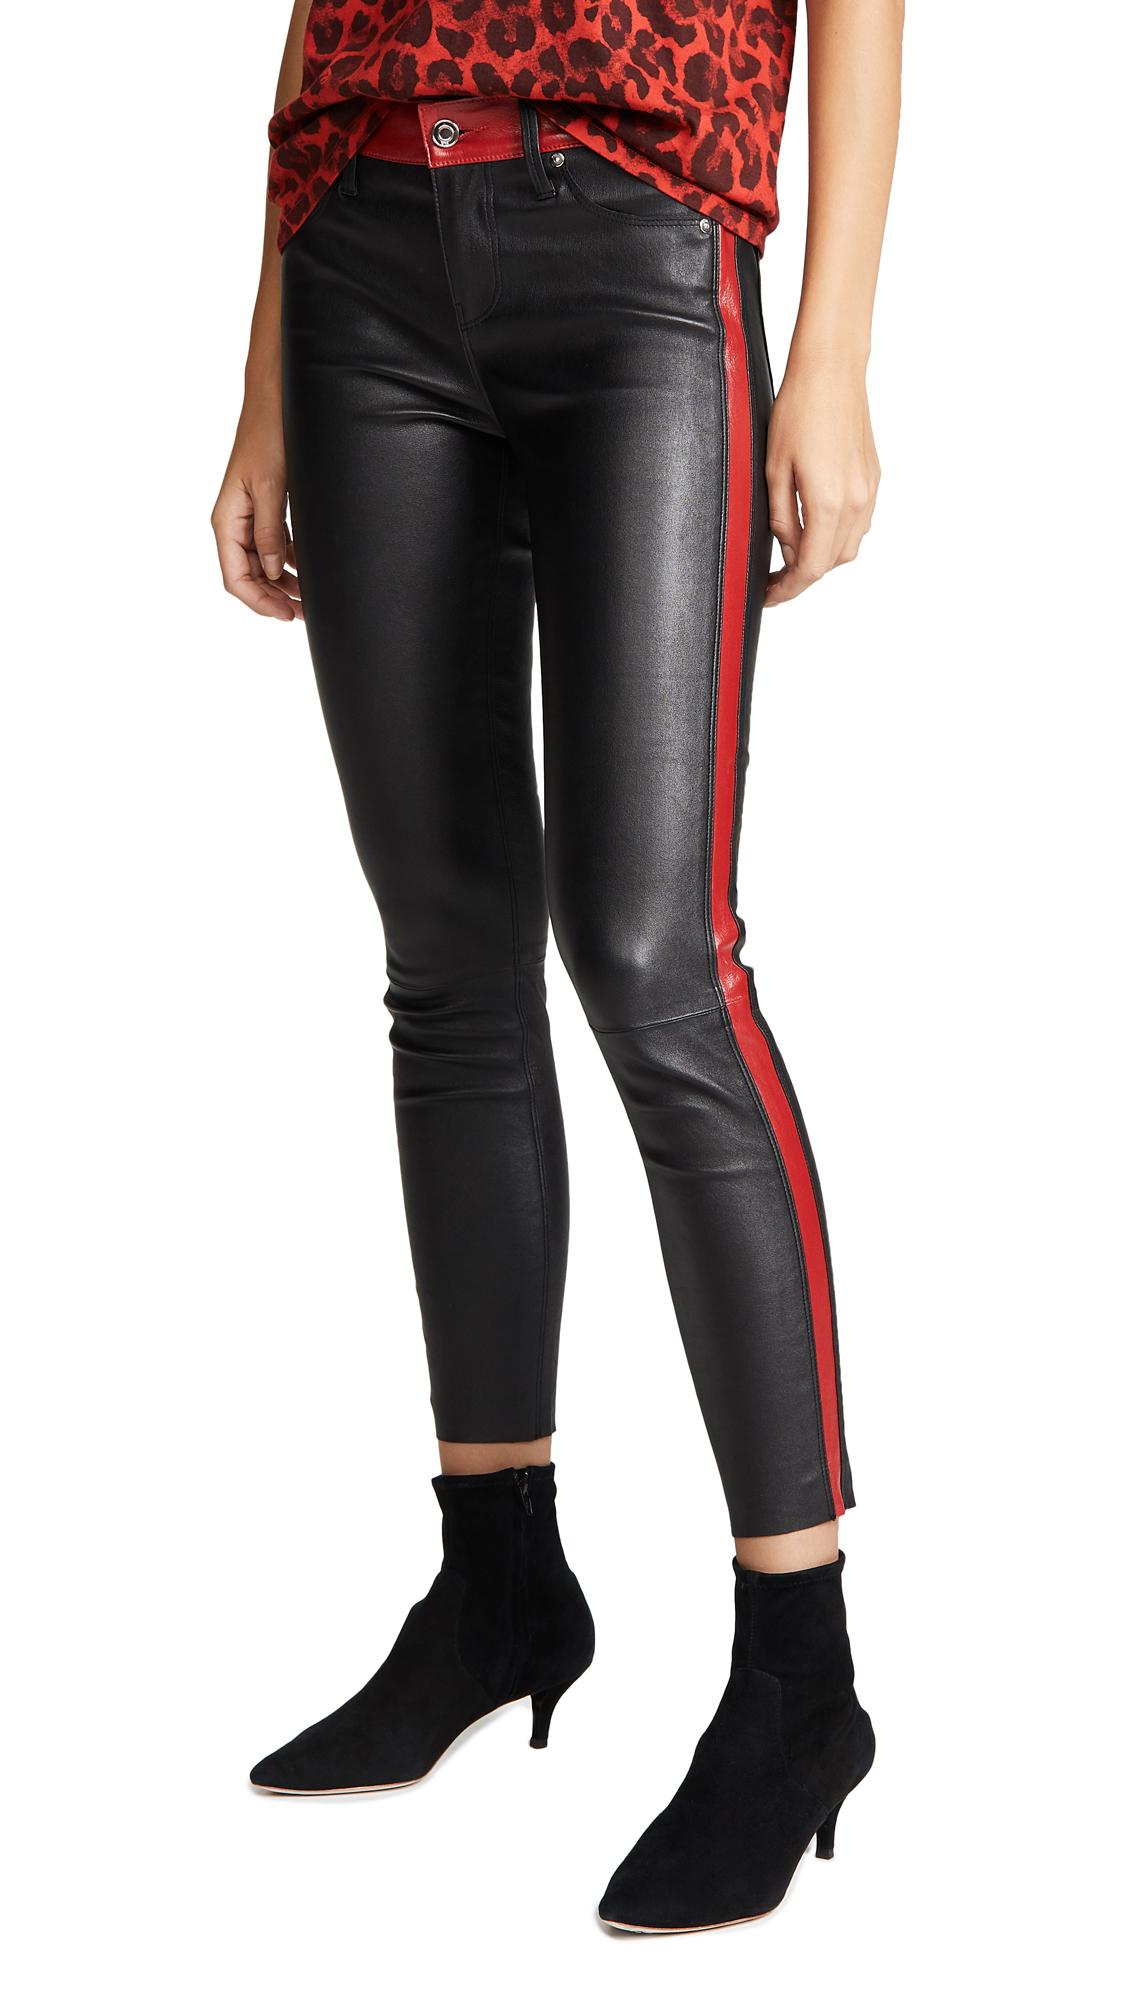 exceptional range of styles and colors compare price good out x RYLAND LEATHER PANTS